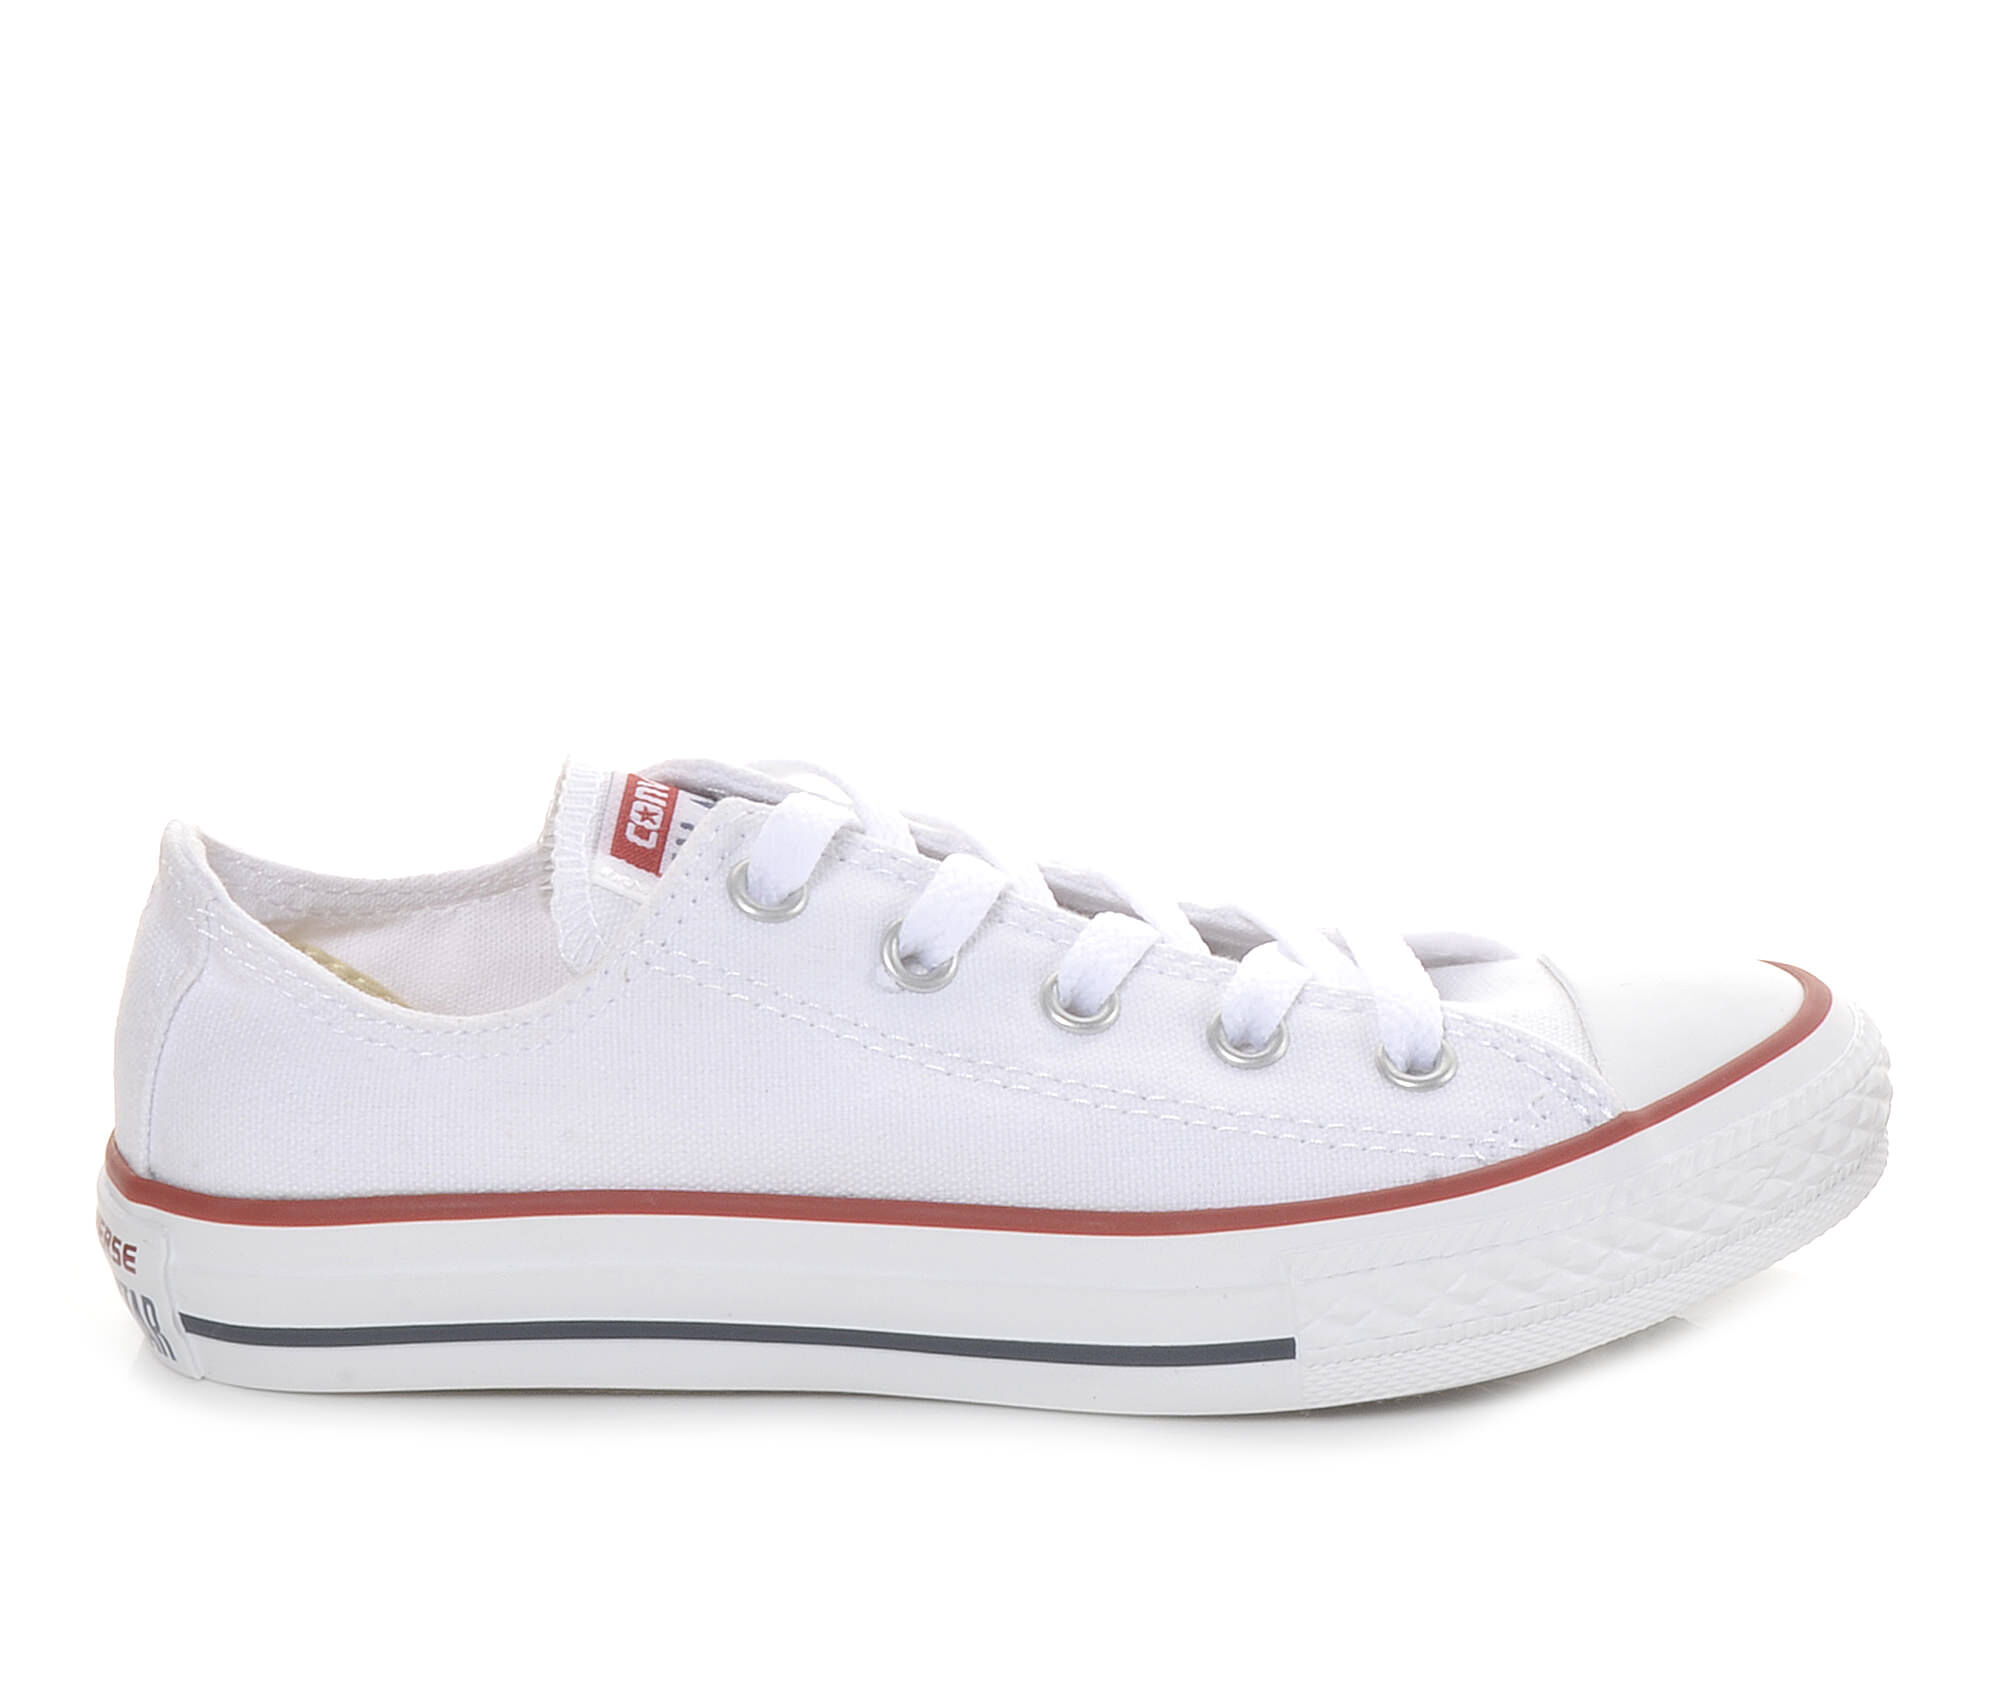 converse kids tennis shoes